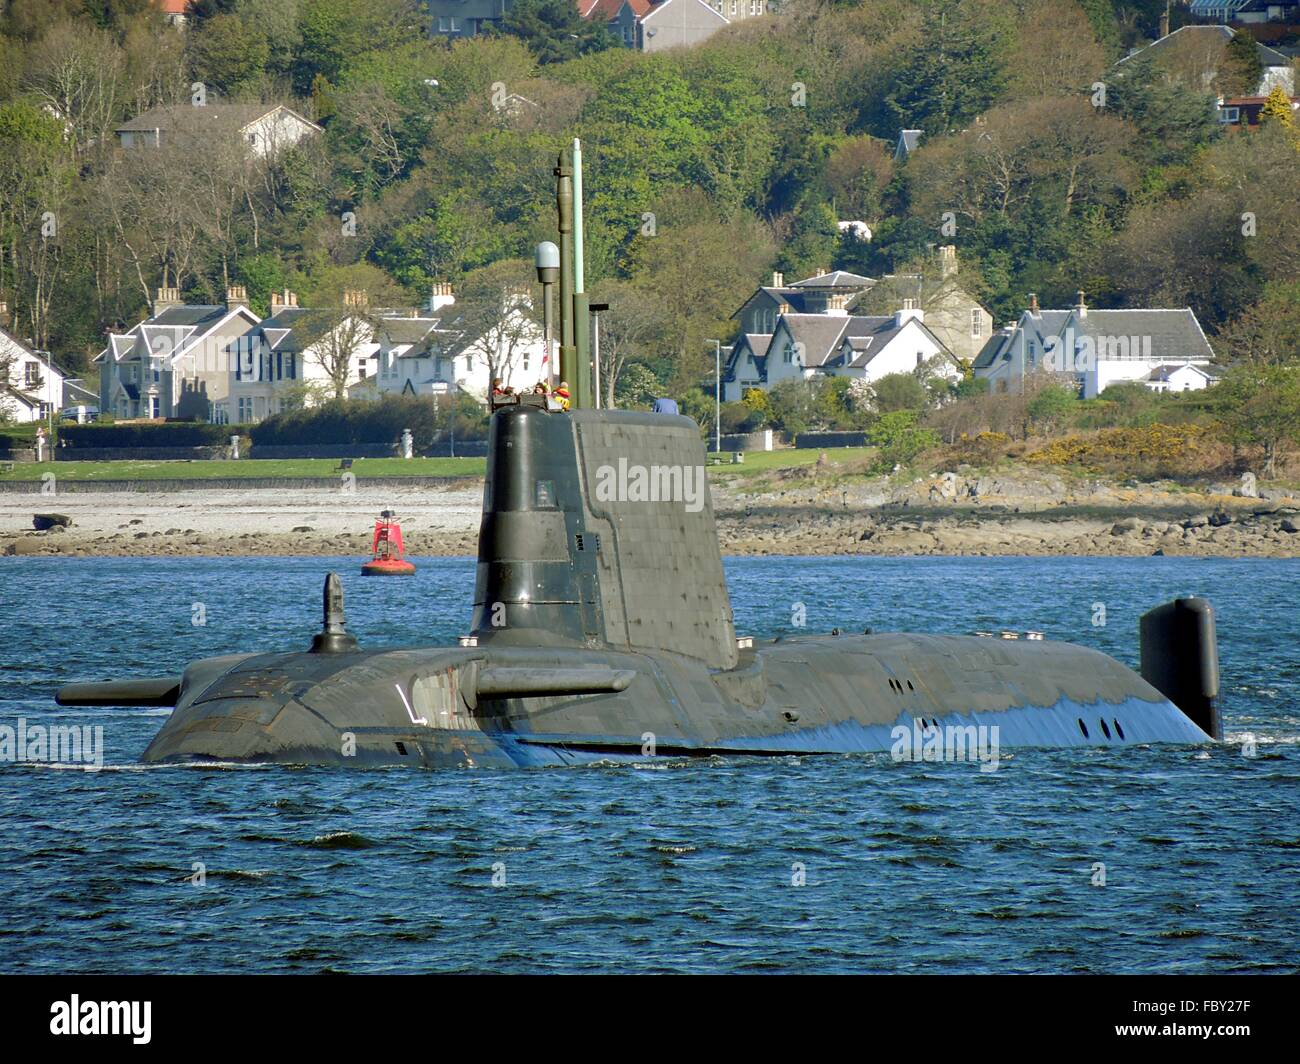 HMS Ambush, the second of seven planned Astute-class submarines for the  Royal Navy, off Gourock on the Firth of Clyde.